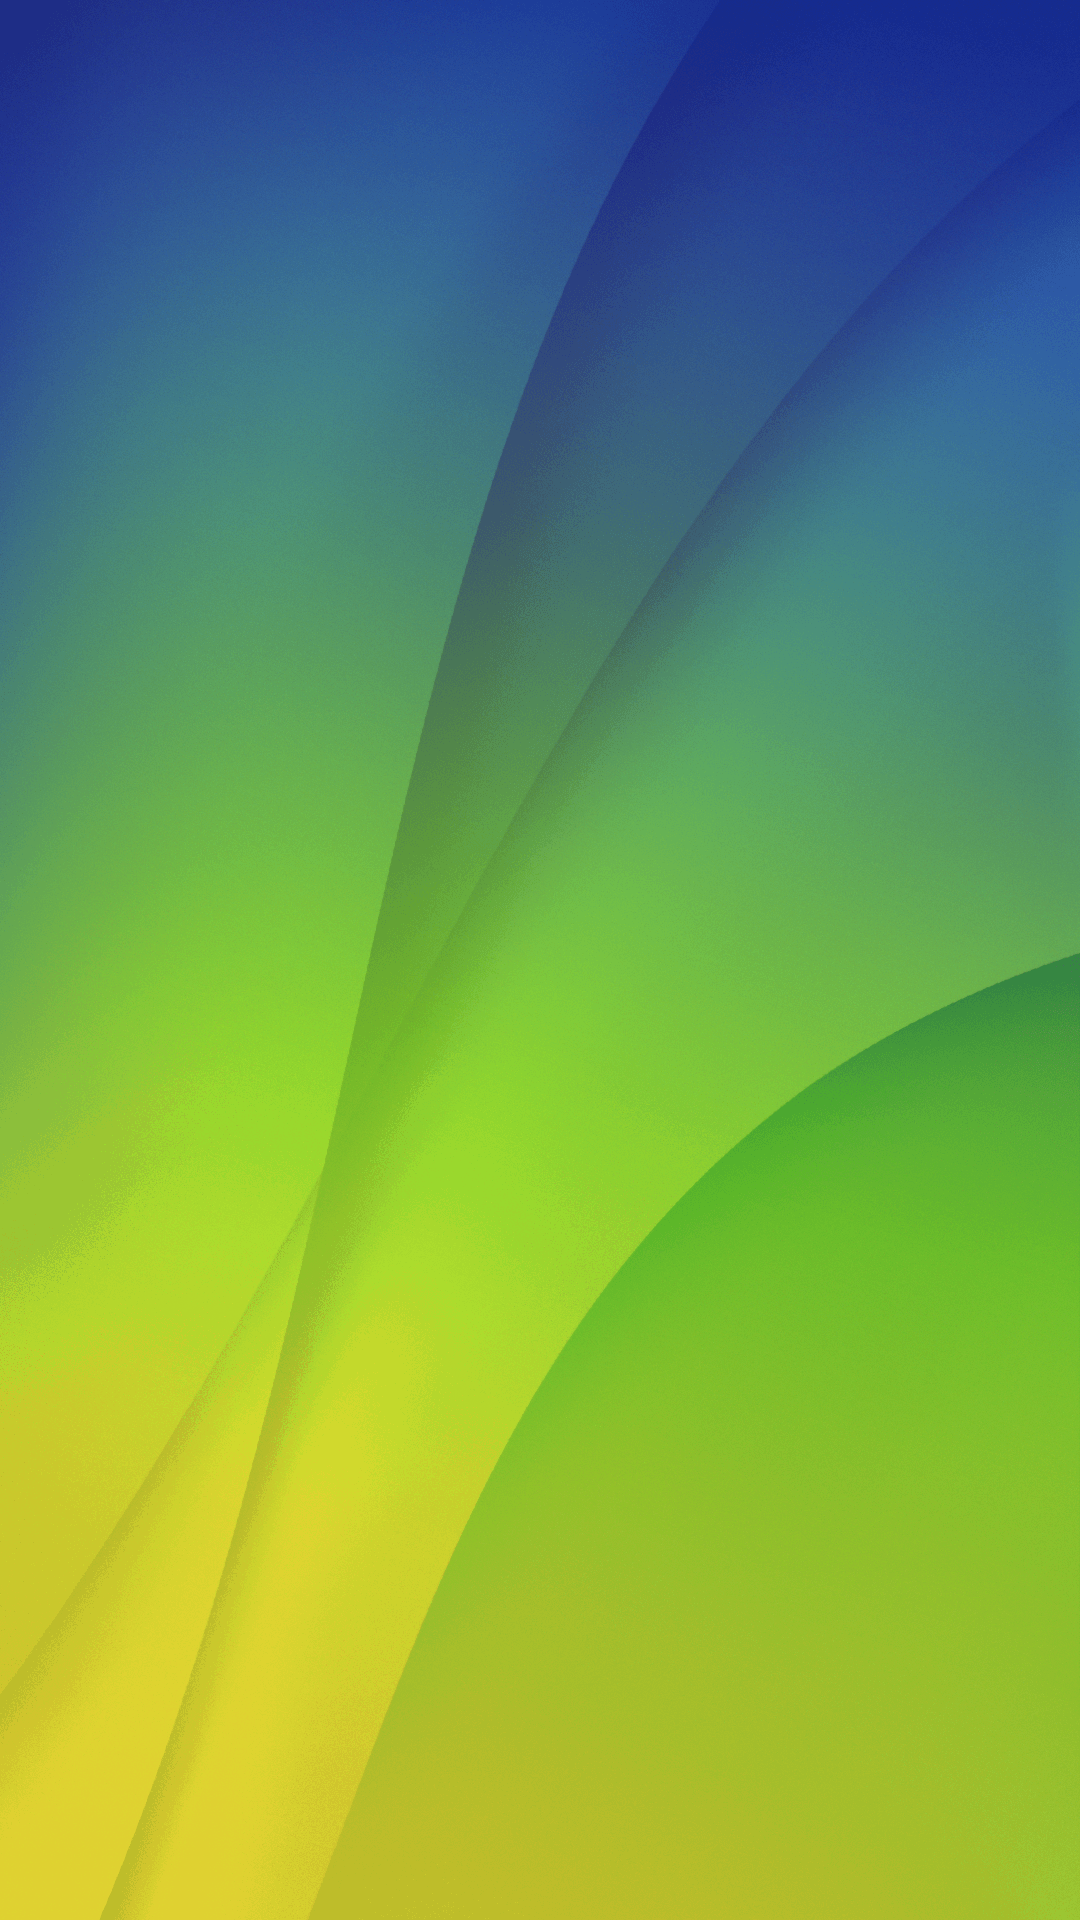 oppo r9s stock wallpapers